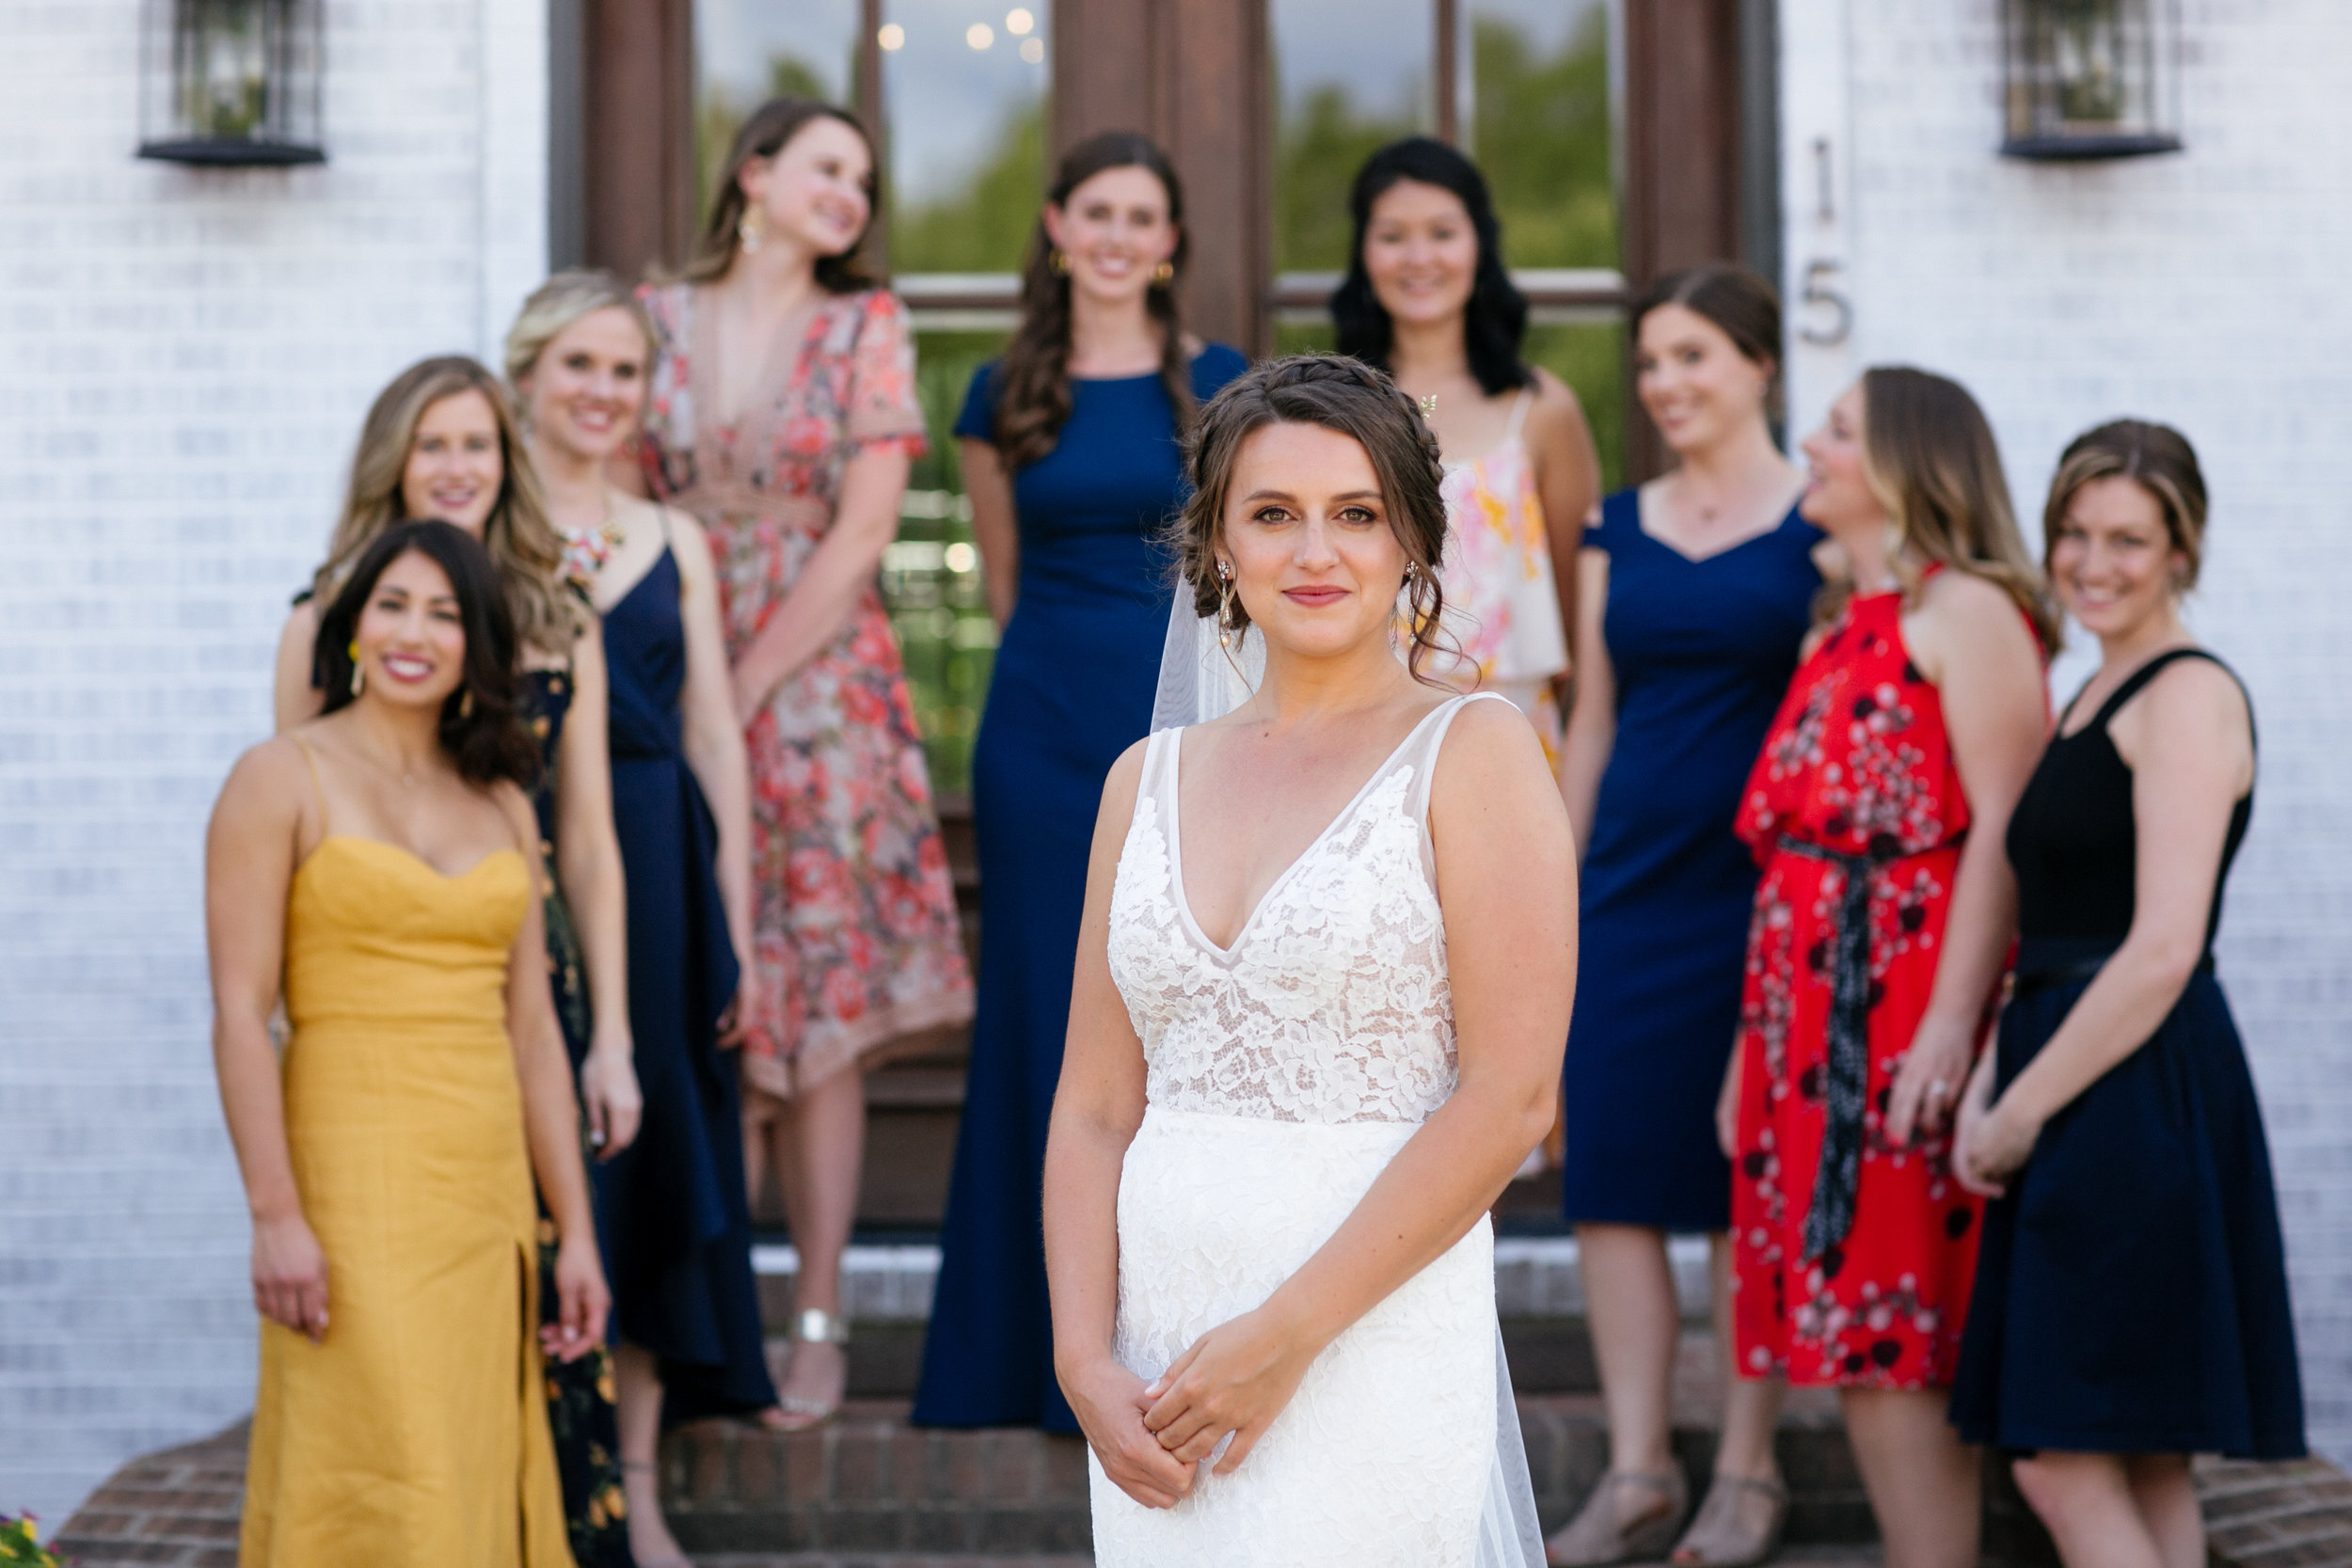 22-2019-Wedding-select-web.jpg